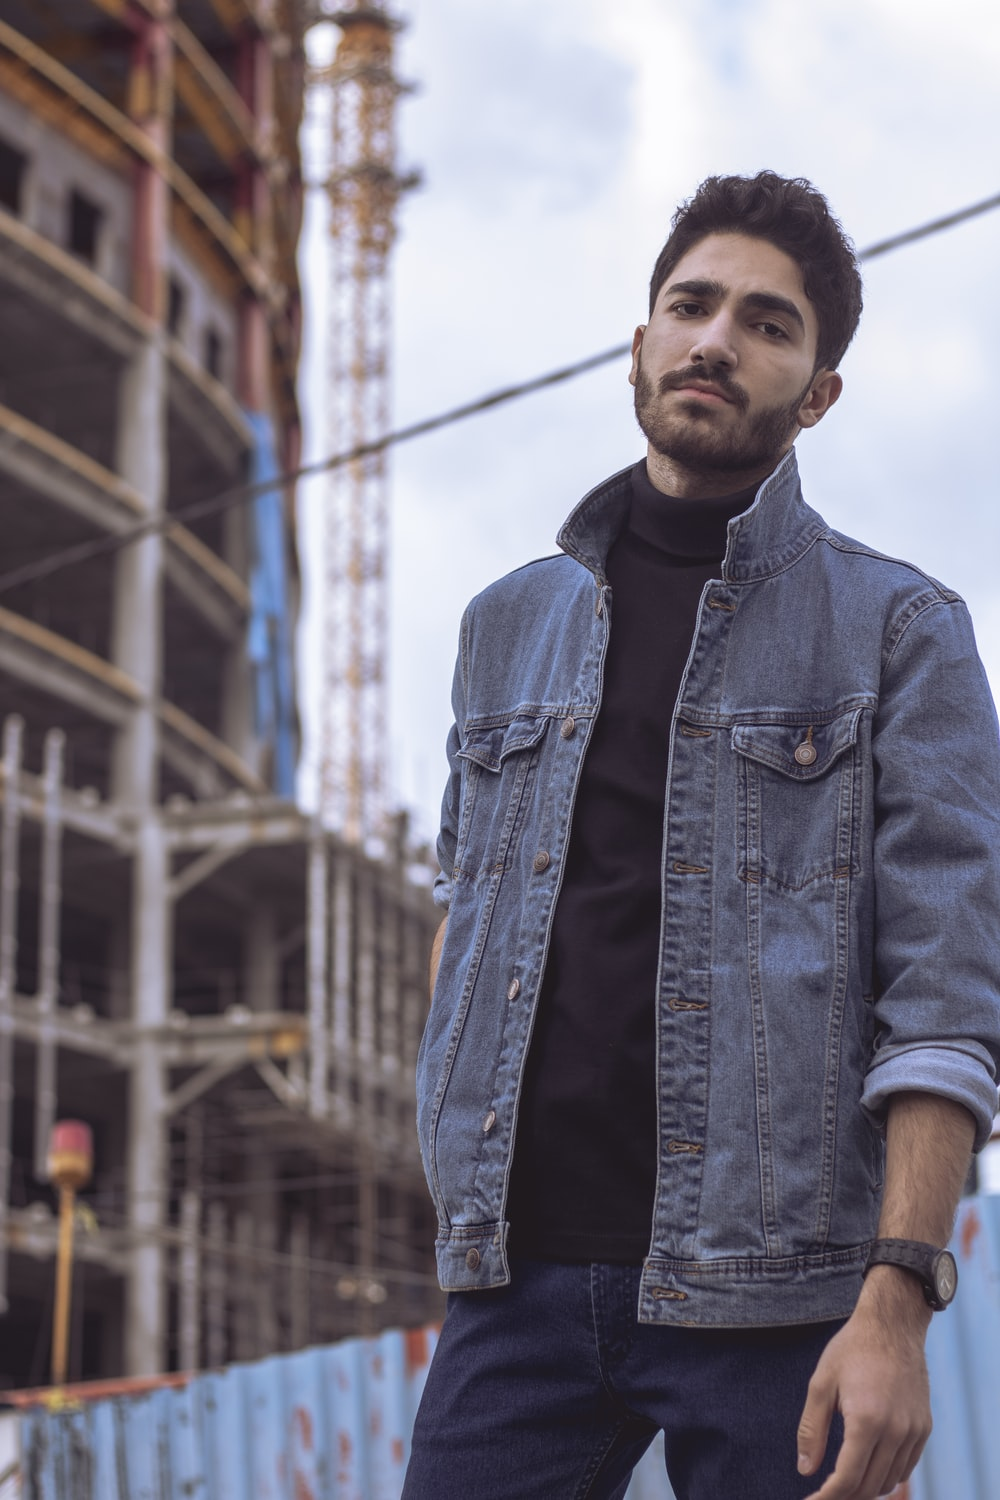 man in blue denim jacket standing near building during daytime